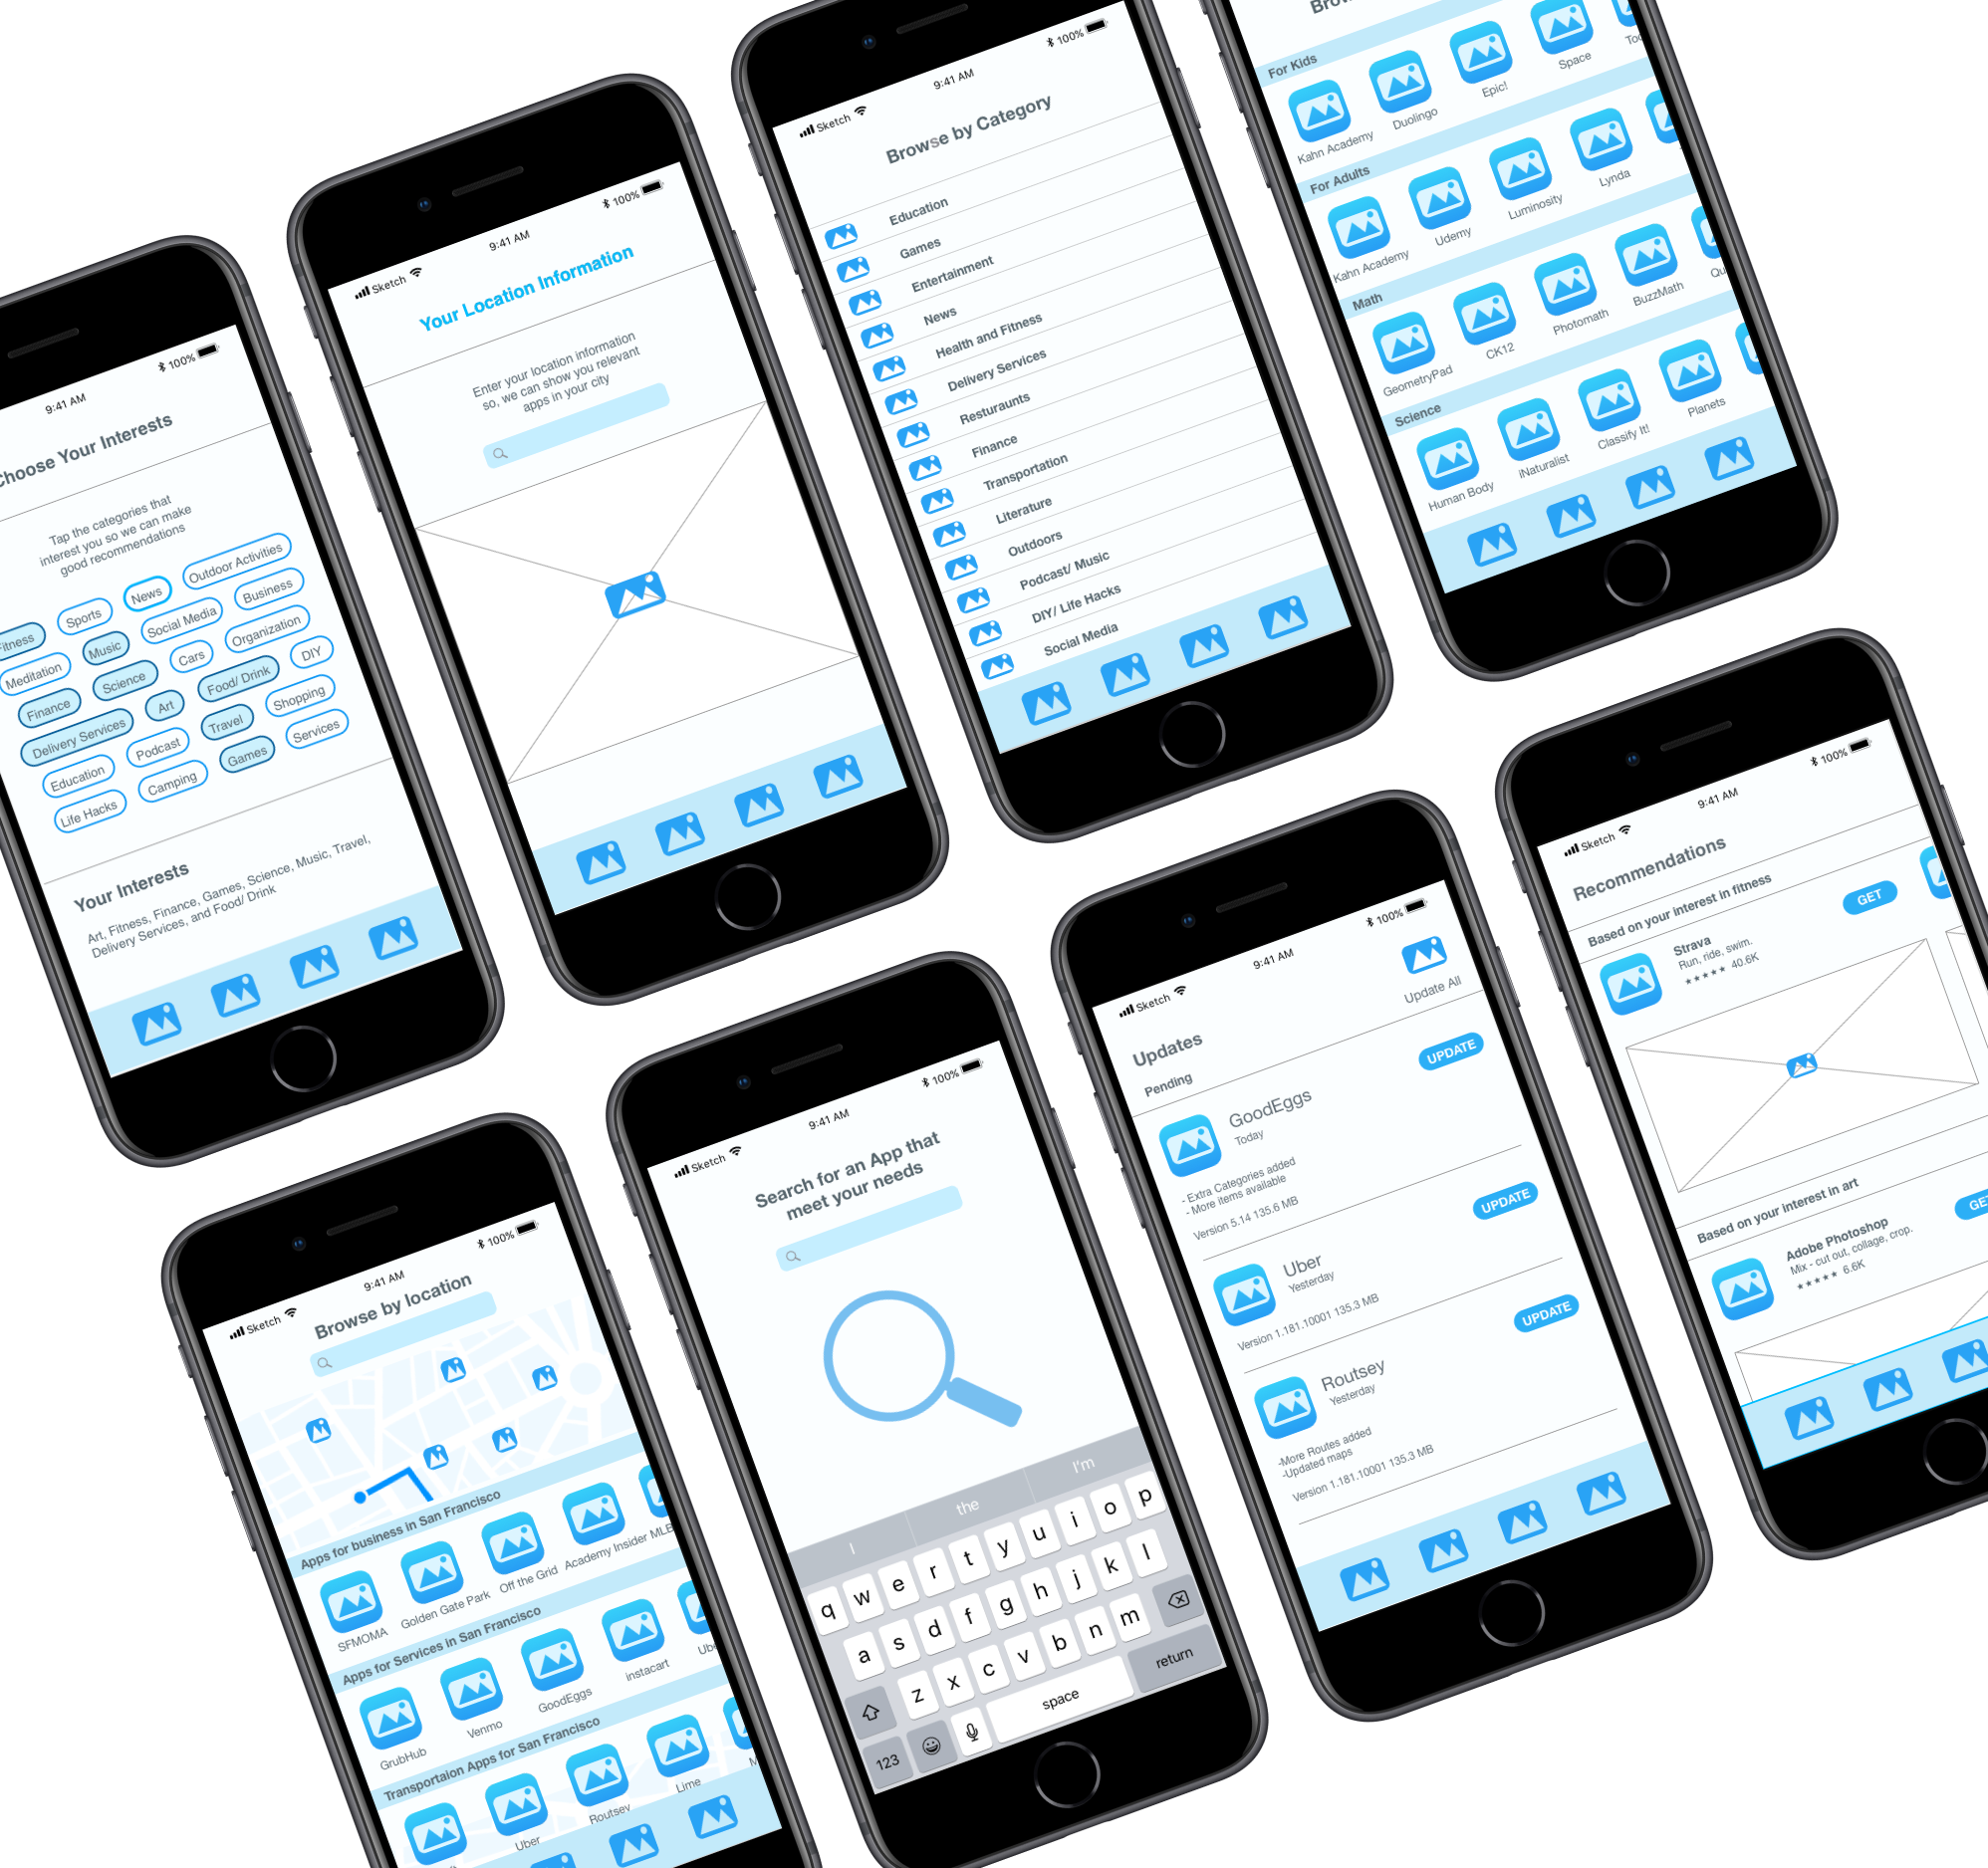 app_store_wireframe.png